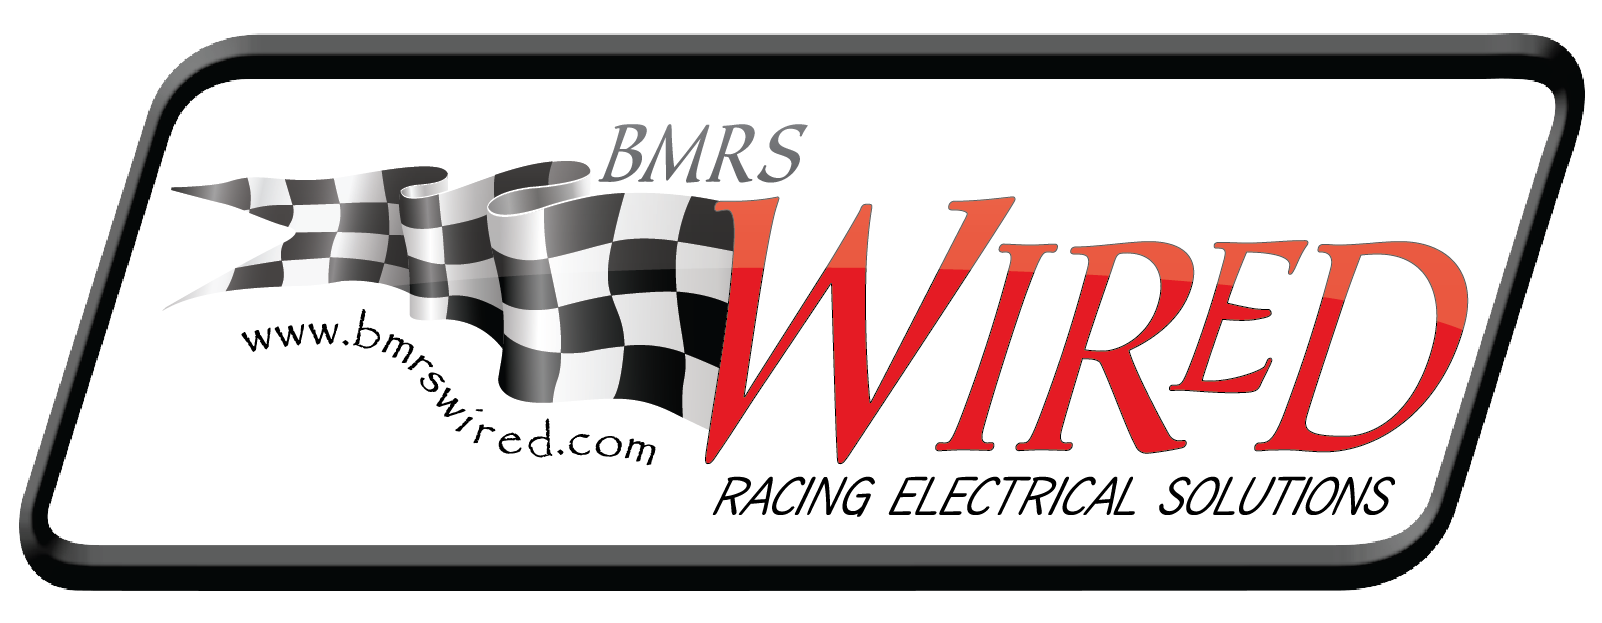 BMRS Wired.png